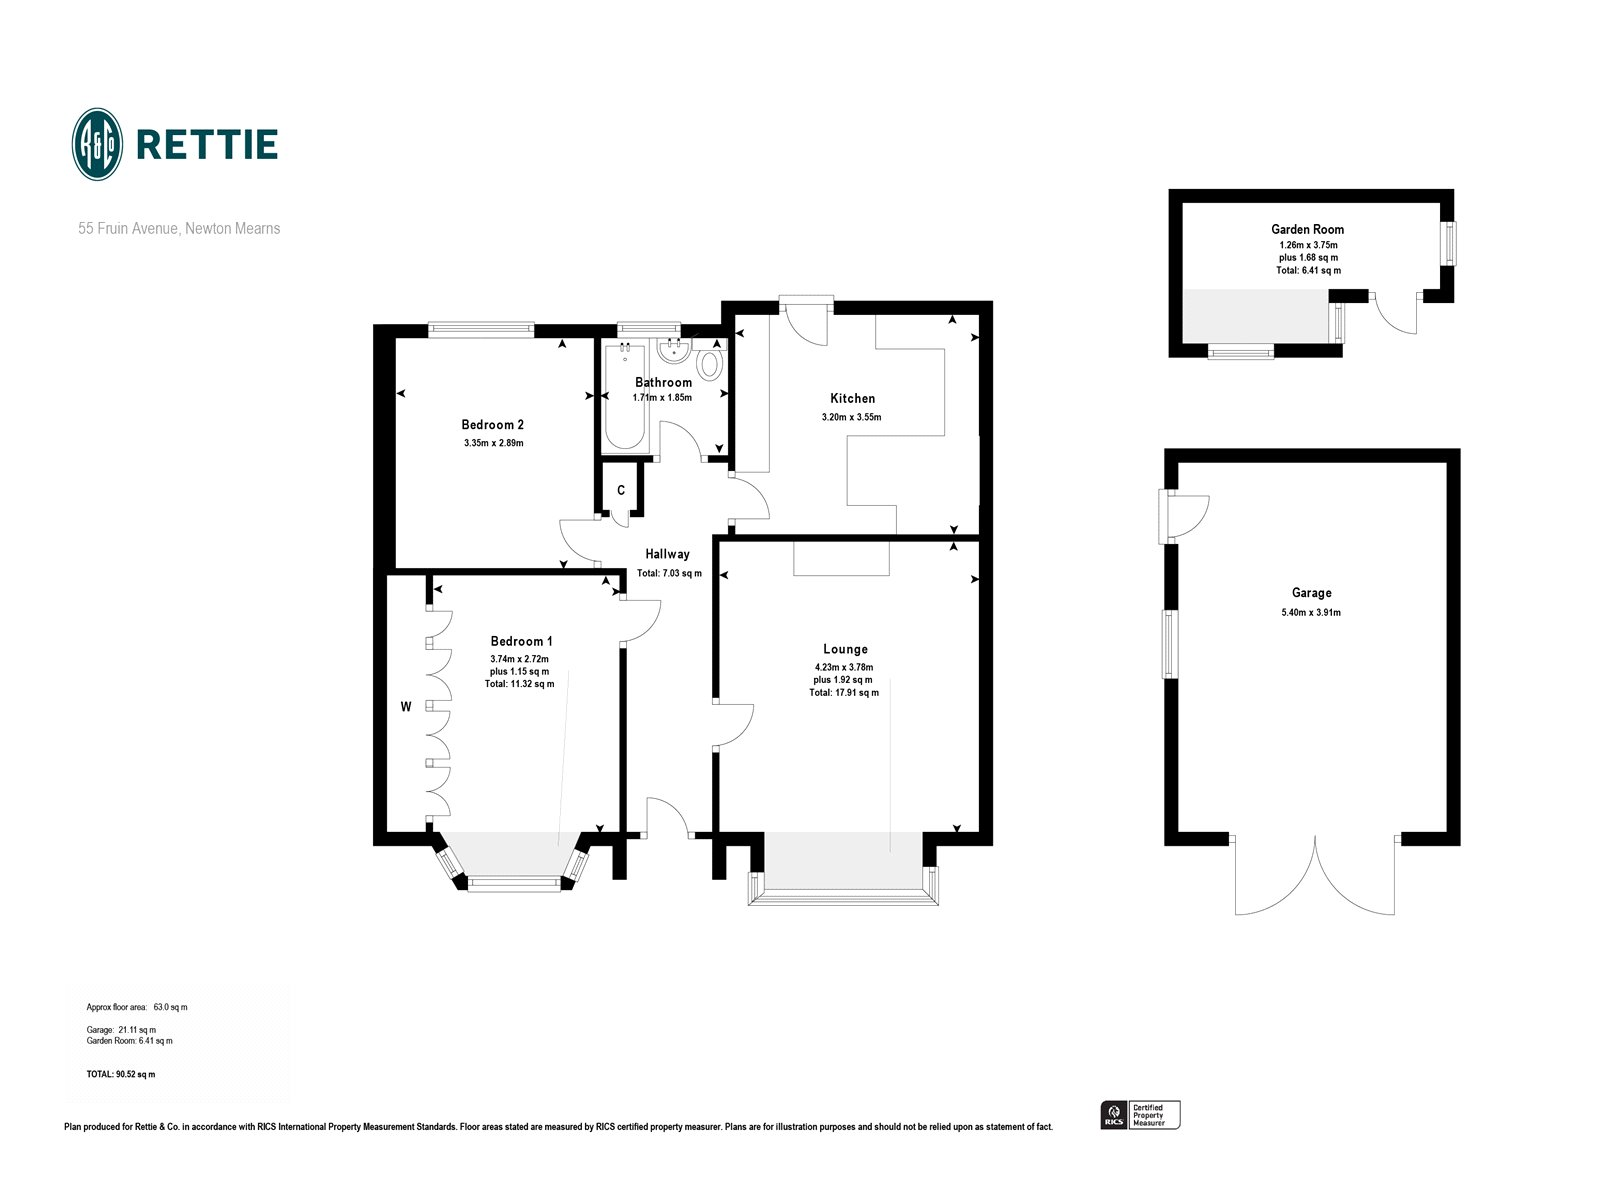 Floorplans for Fruin Avenue, Newton Mearns, Glasgow, G77